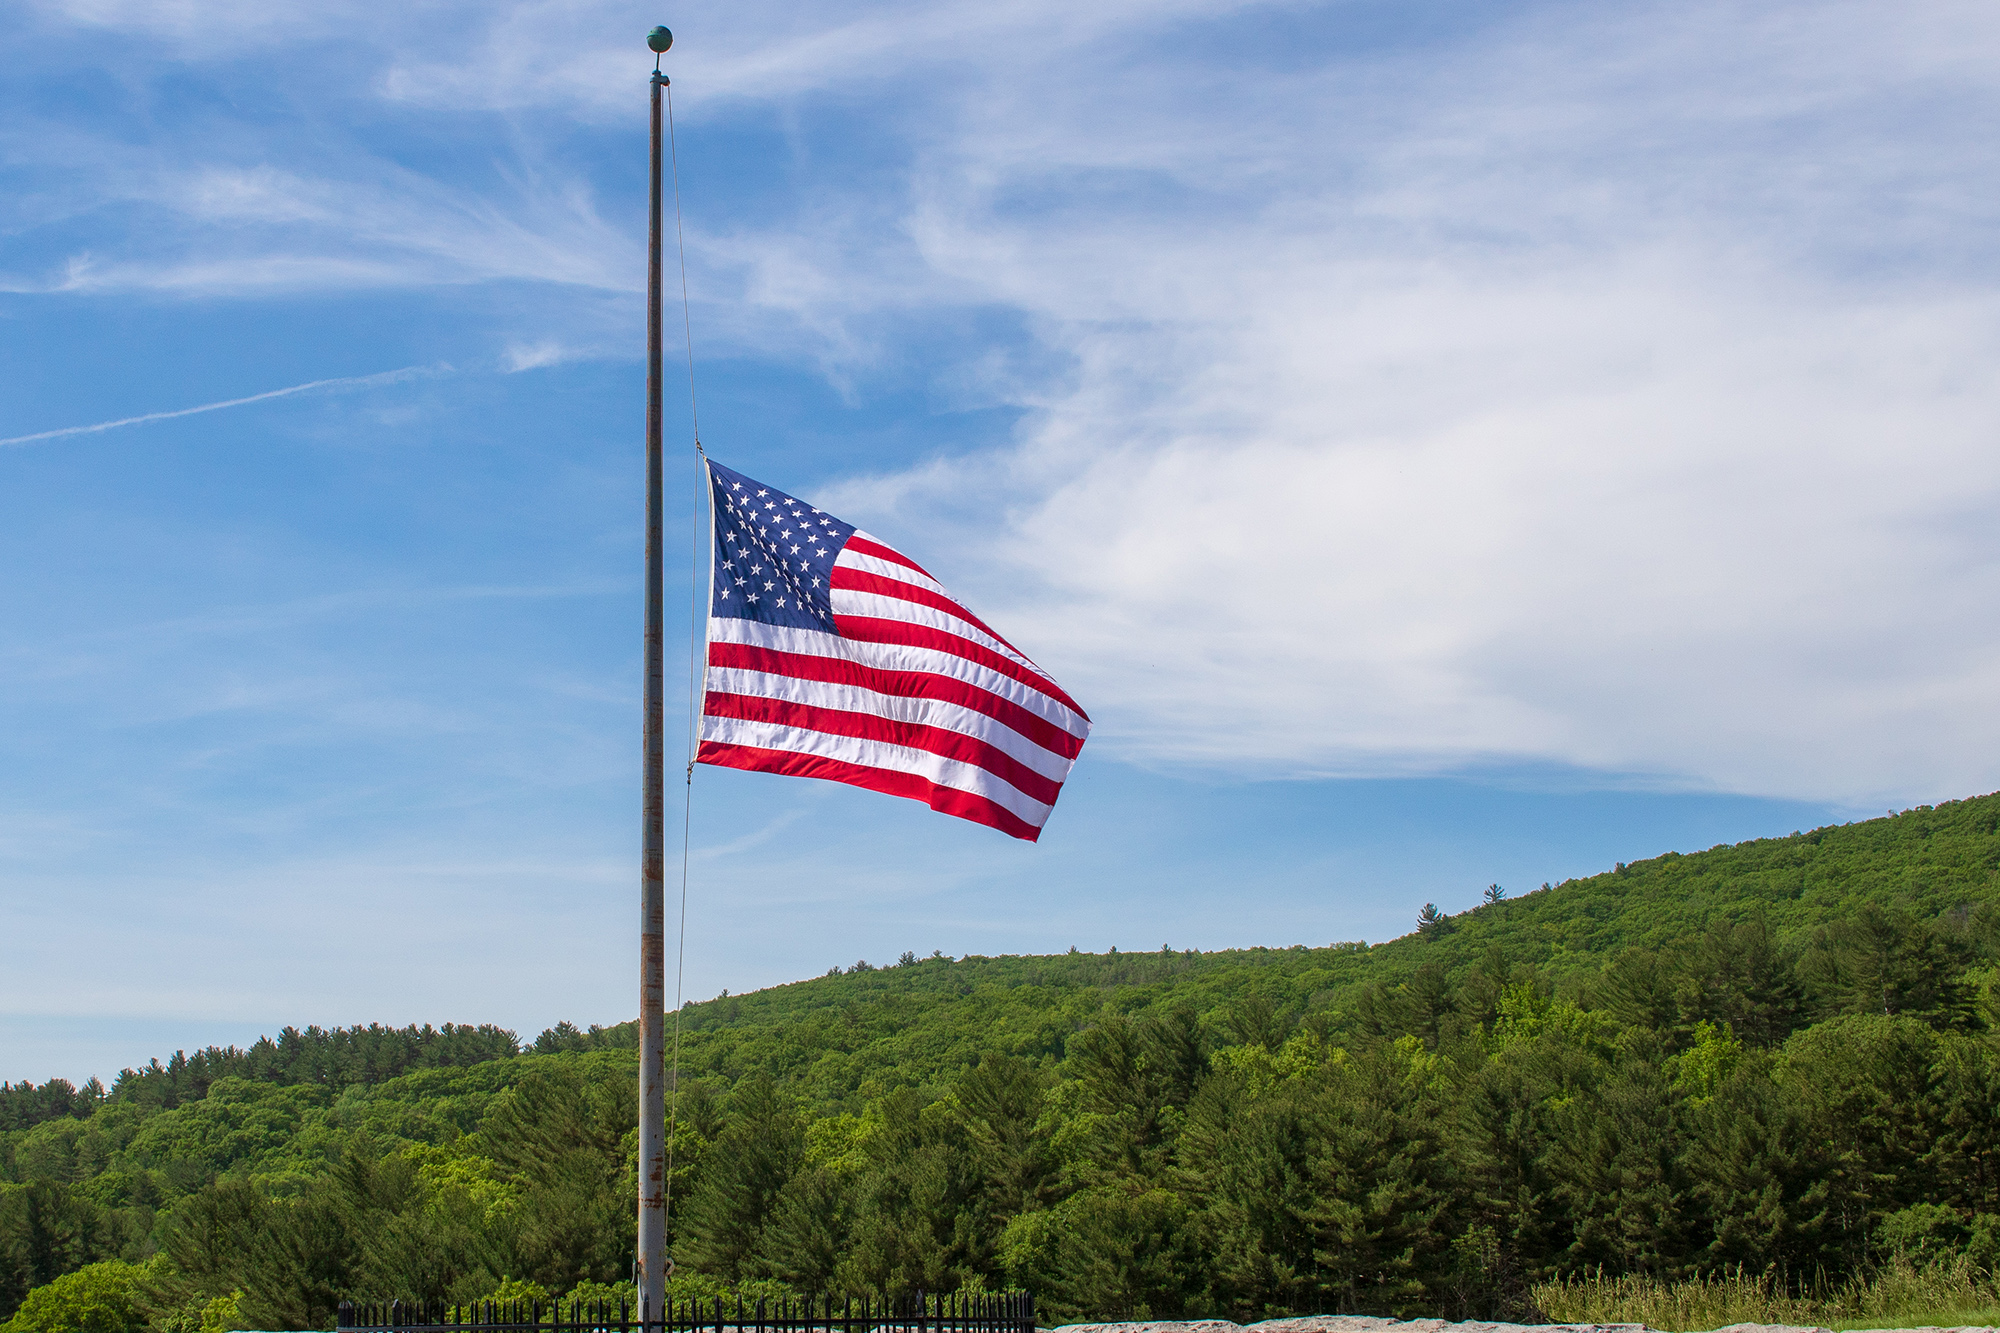 Snyder: Fly flags at half-staff for Texas shooting victims